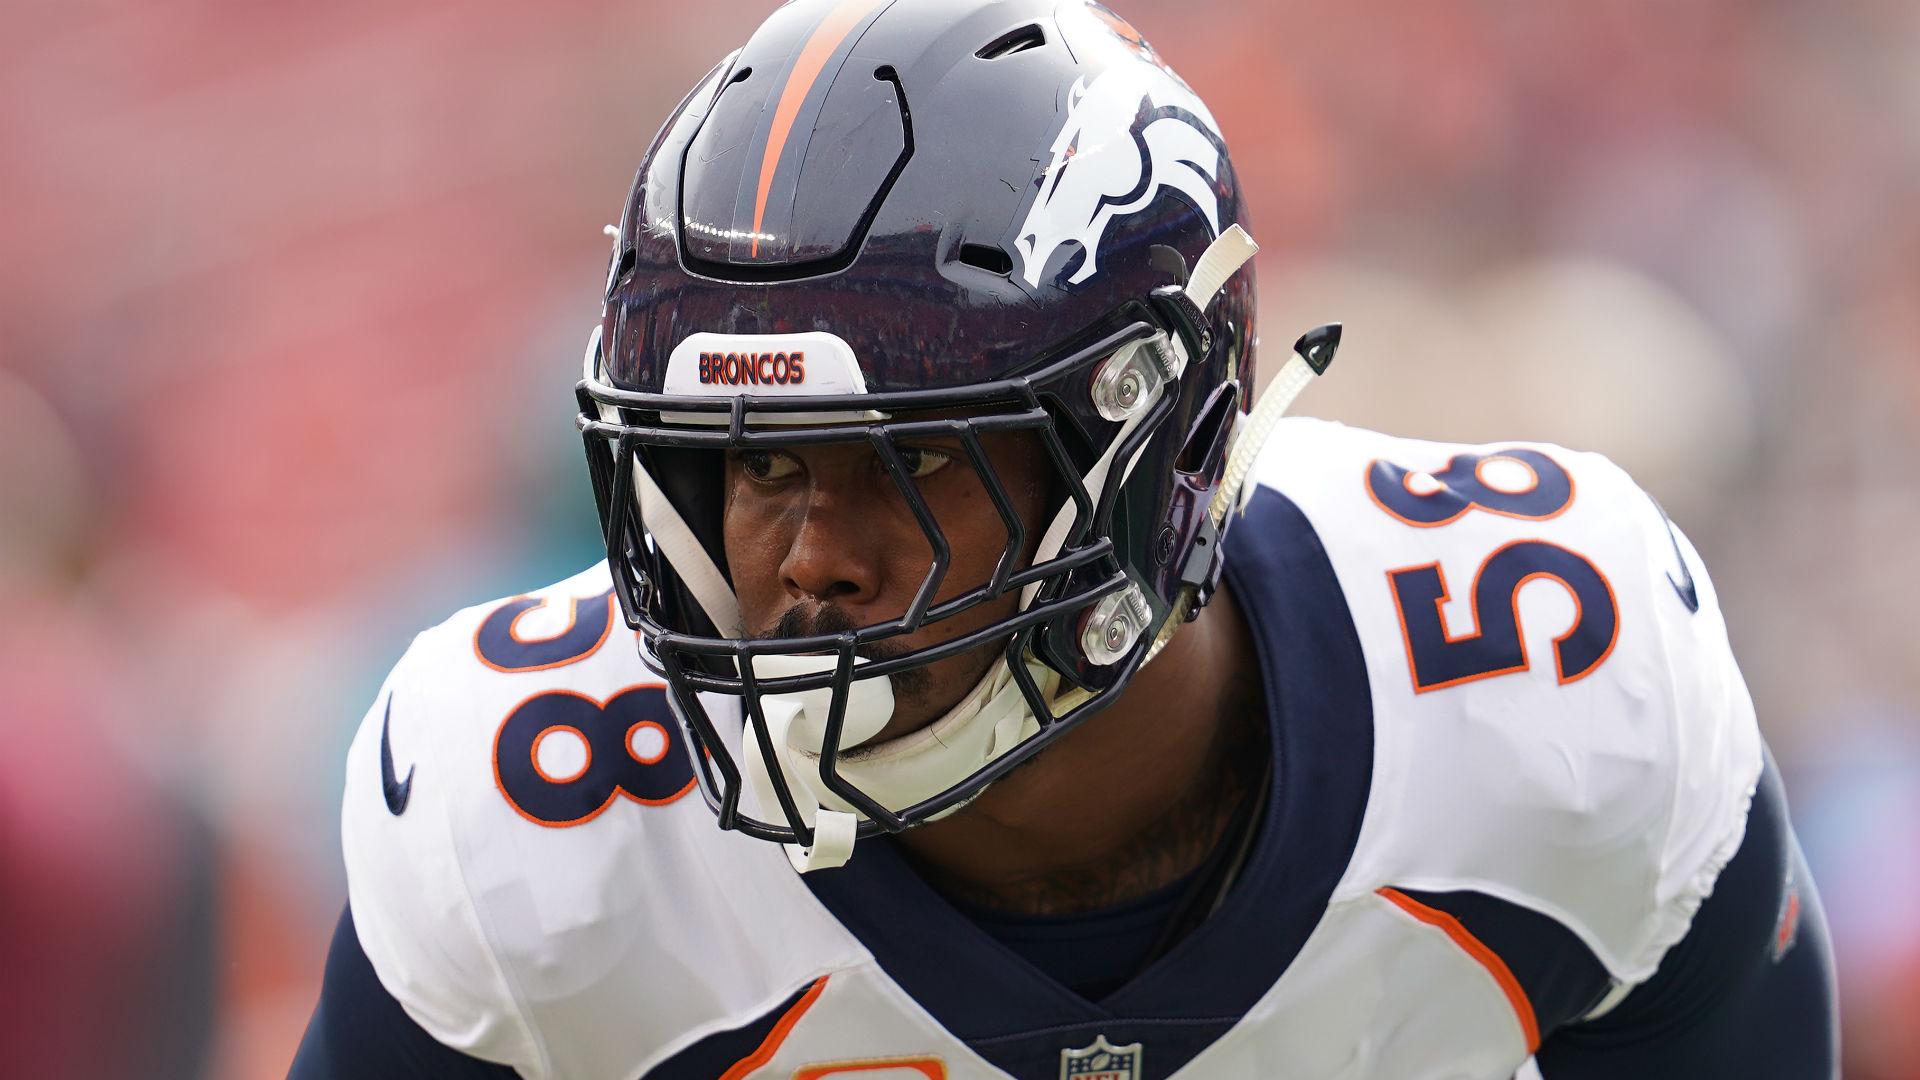 Broncos' Von Miller on players asking for trades: 'I think it's good'